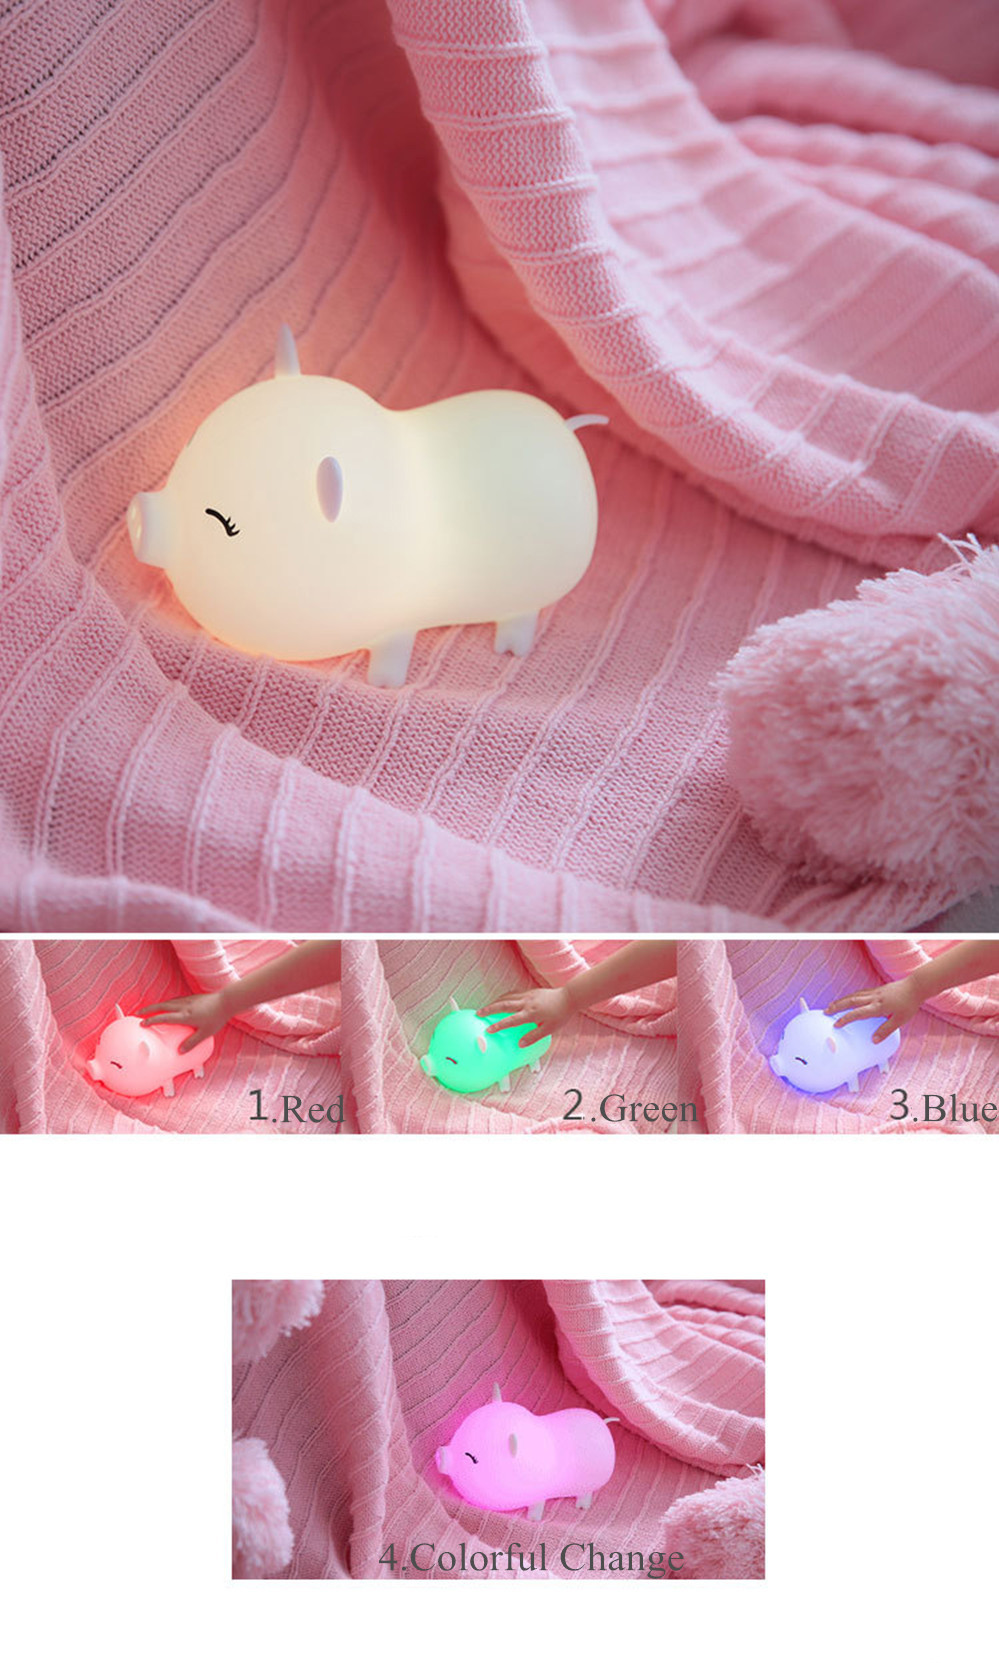 SuperNight Cute Pig LED Night Light Rechargeable Colorful Silicone Animal Touch Sensor Table Lamp Baby Kids Bedroom Bedside Lamp (7)